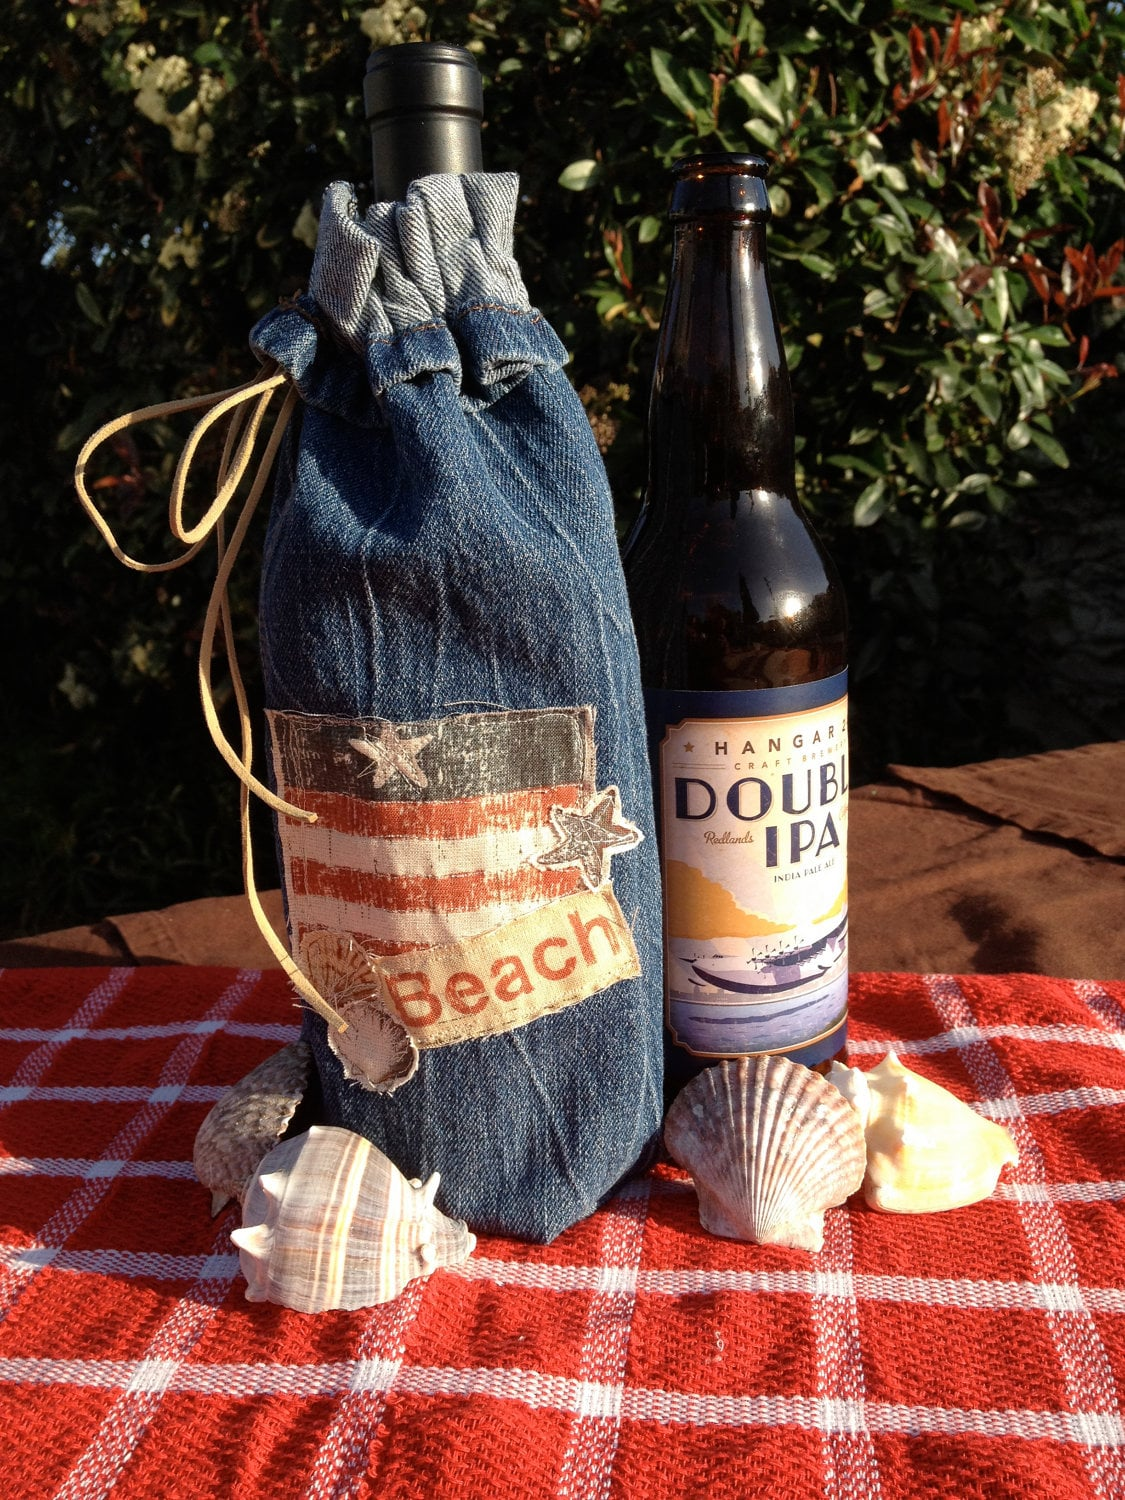 Denim wine carrier 221 upcycling ideas that will blow for Jeans upcycling ideas